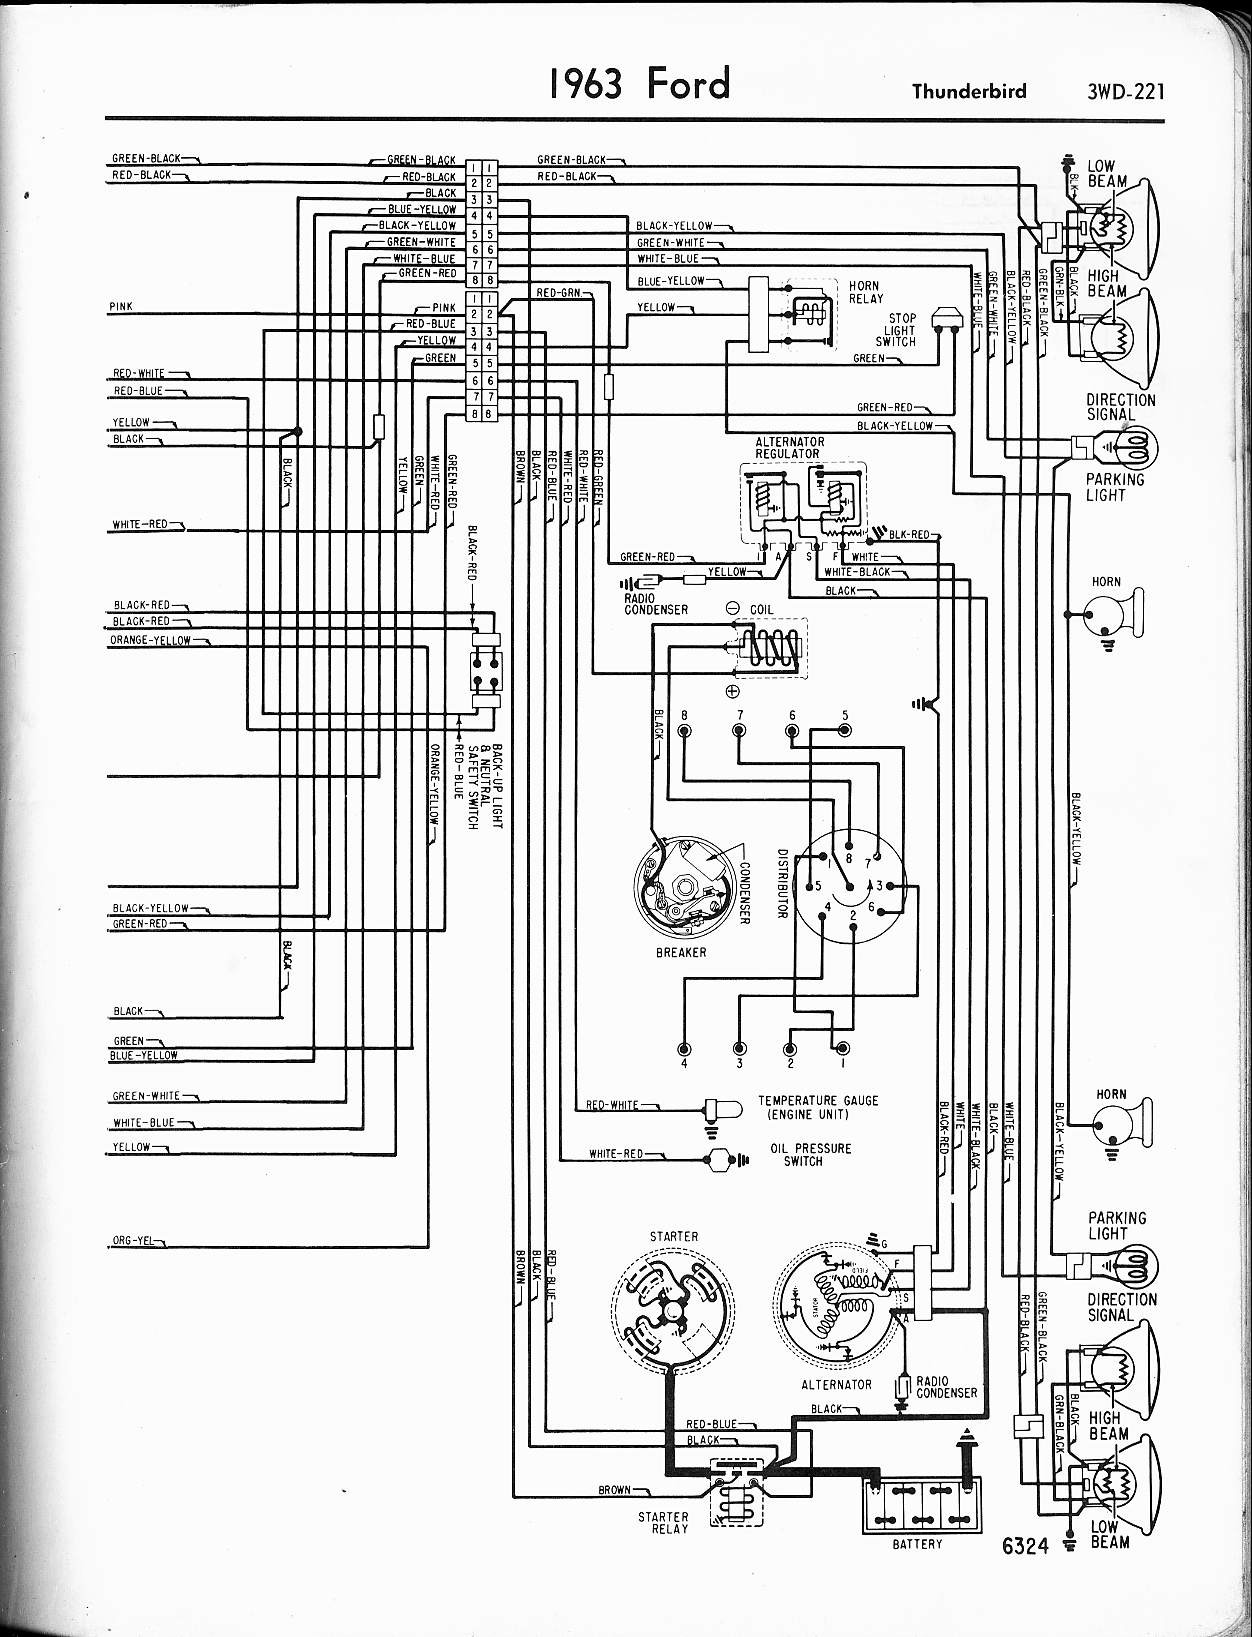 [DIAGRAM_5FD]  1966 Falcon Wiring Diagram 3 Way Light Circuit Wiring Diagram A -  deville.jambu.astrea-construction.fr | 1966 Falcon Wiring Diagrams |  | ASTREA CONSTRUCTION